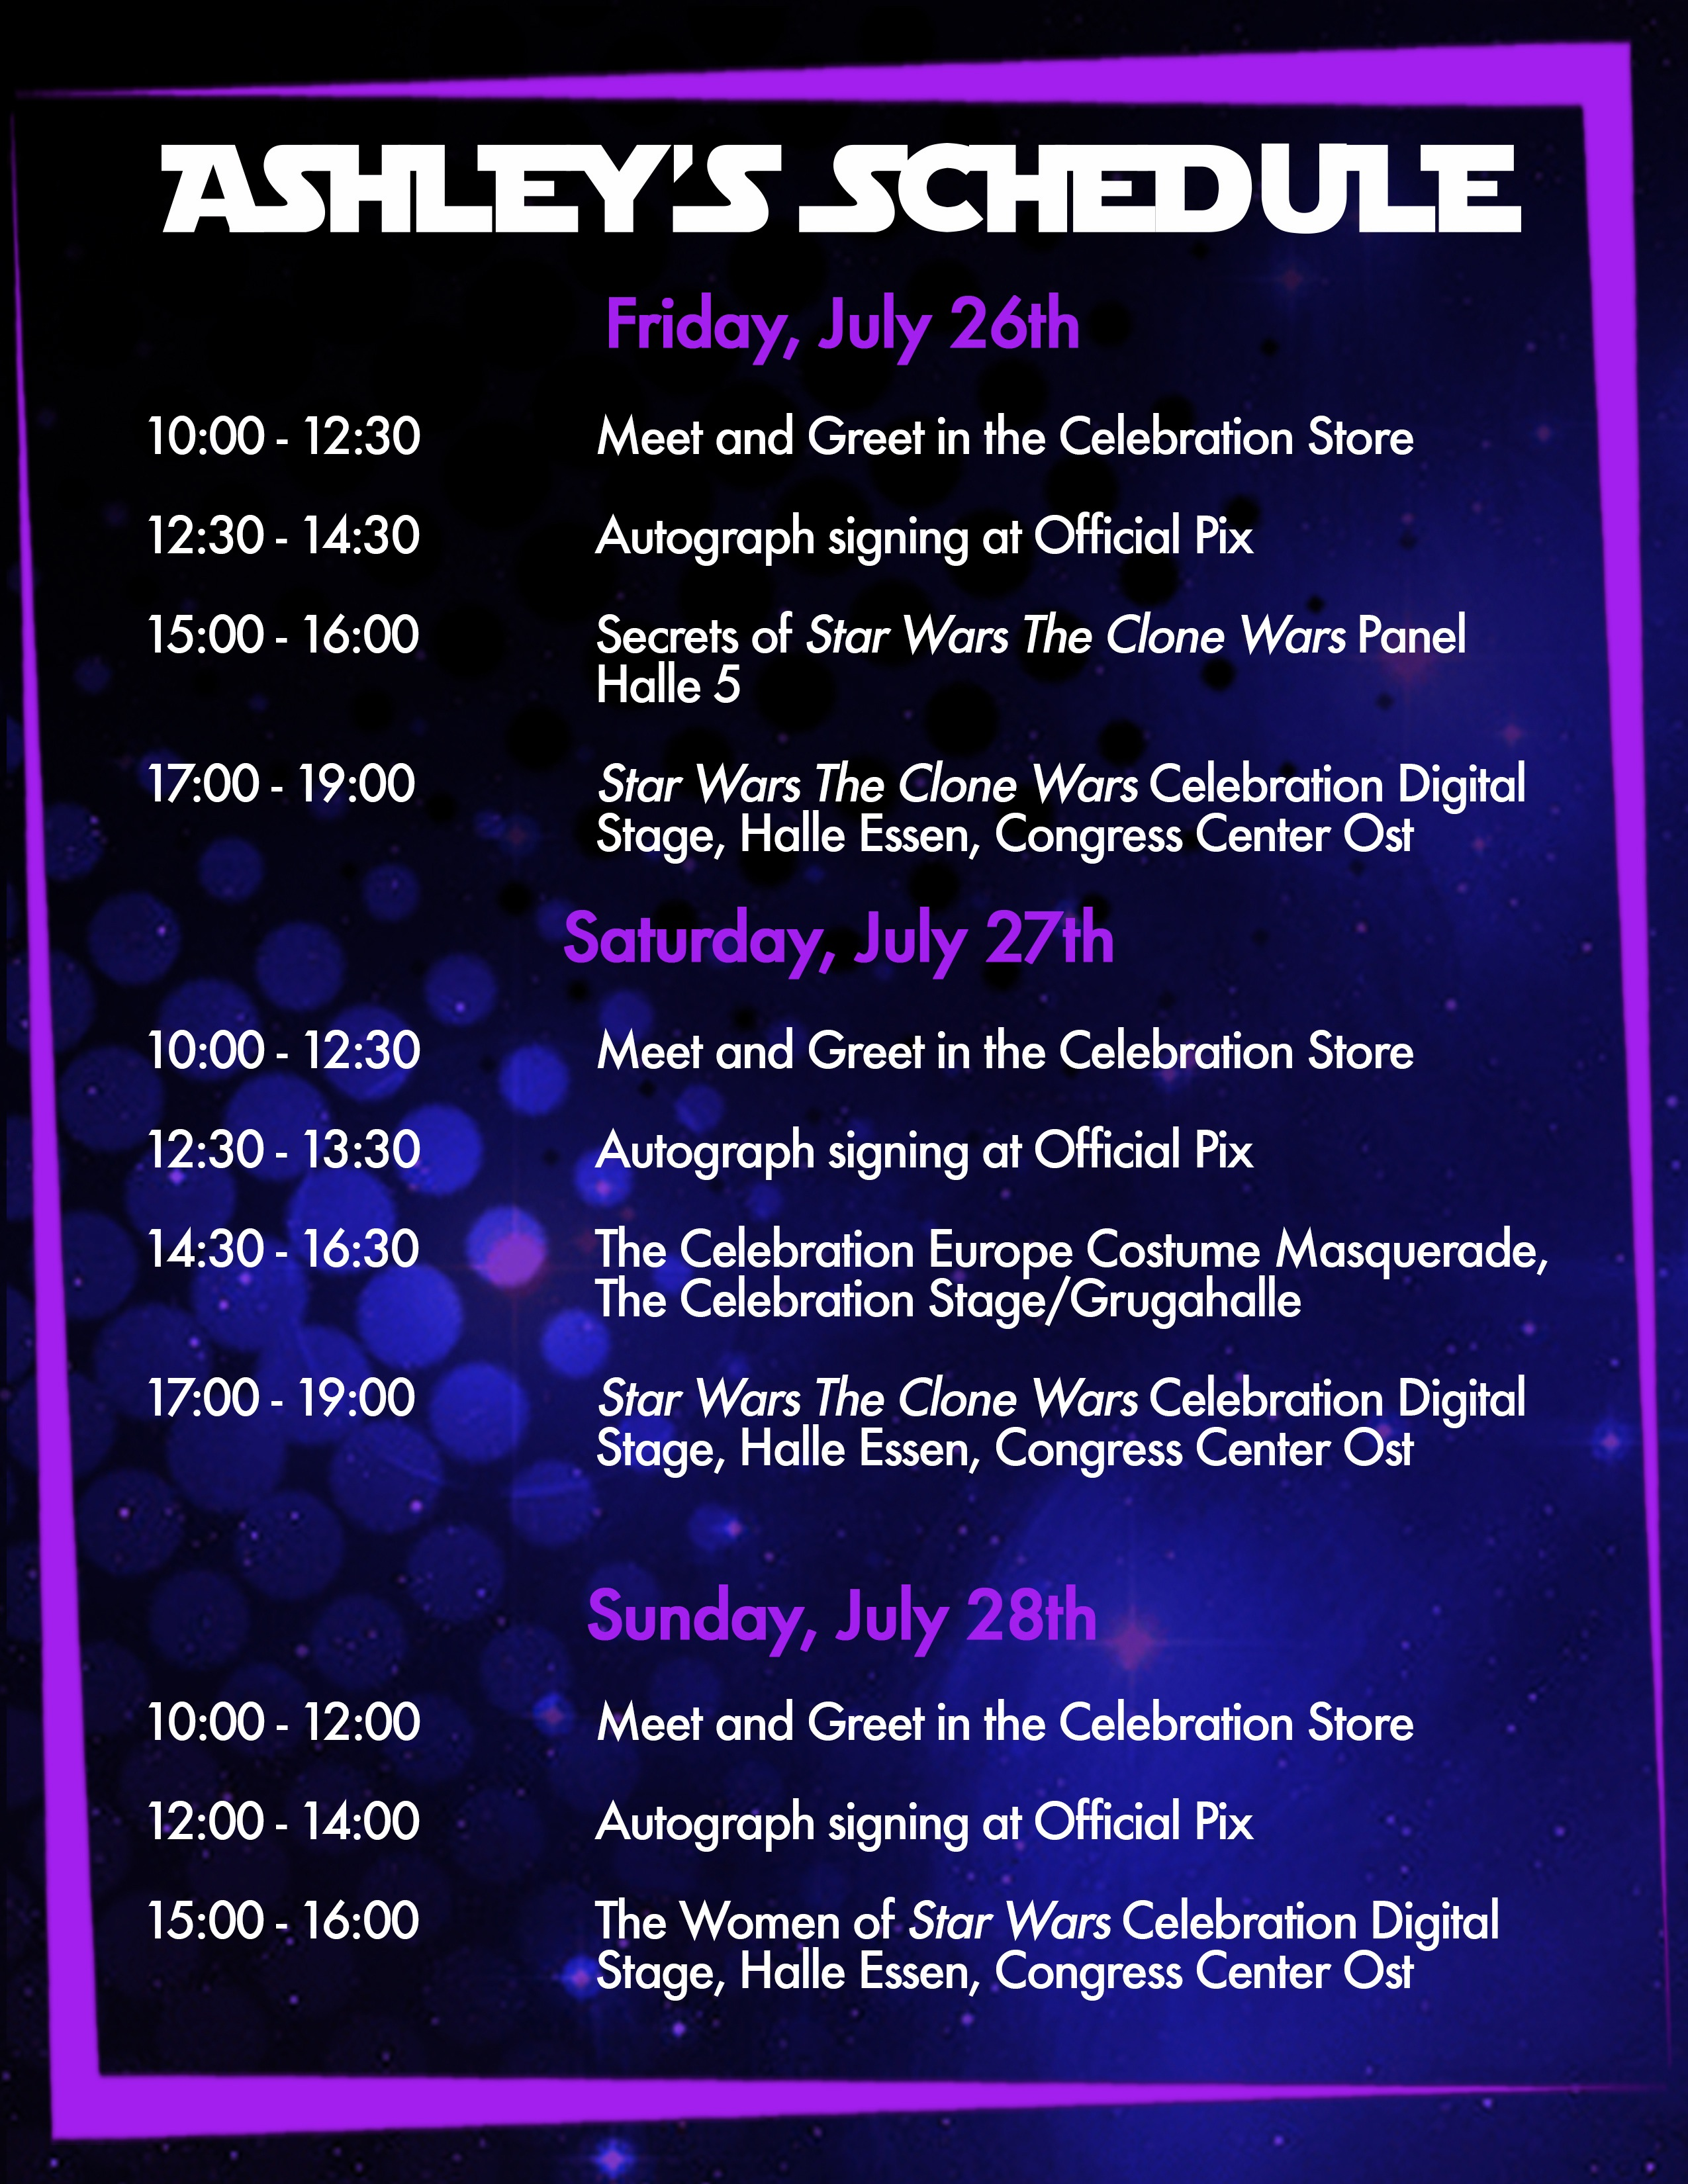 Ashley's Star Wars Celebration Schedule